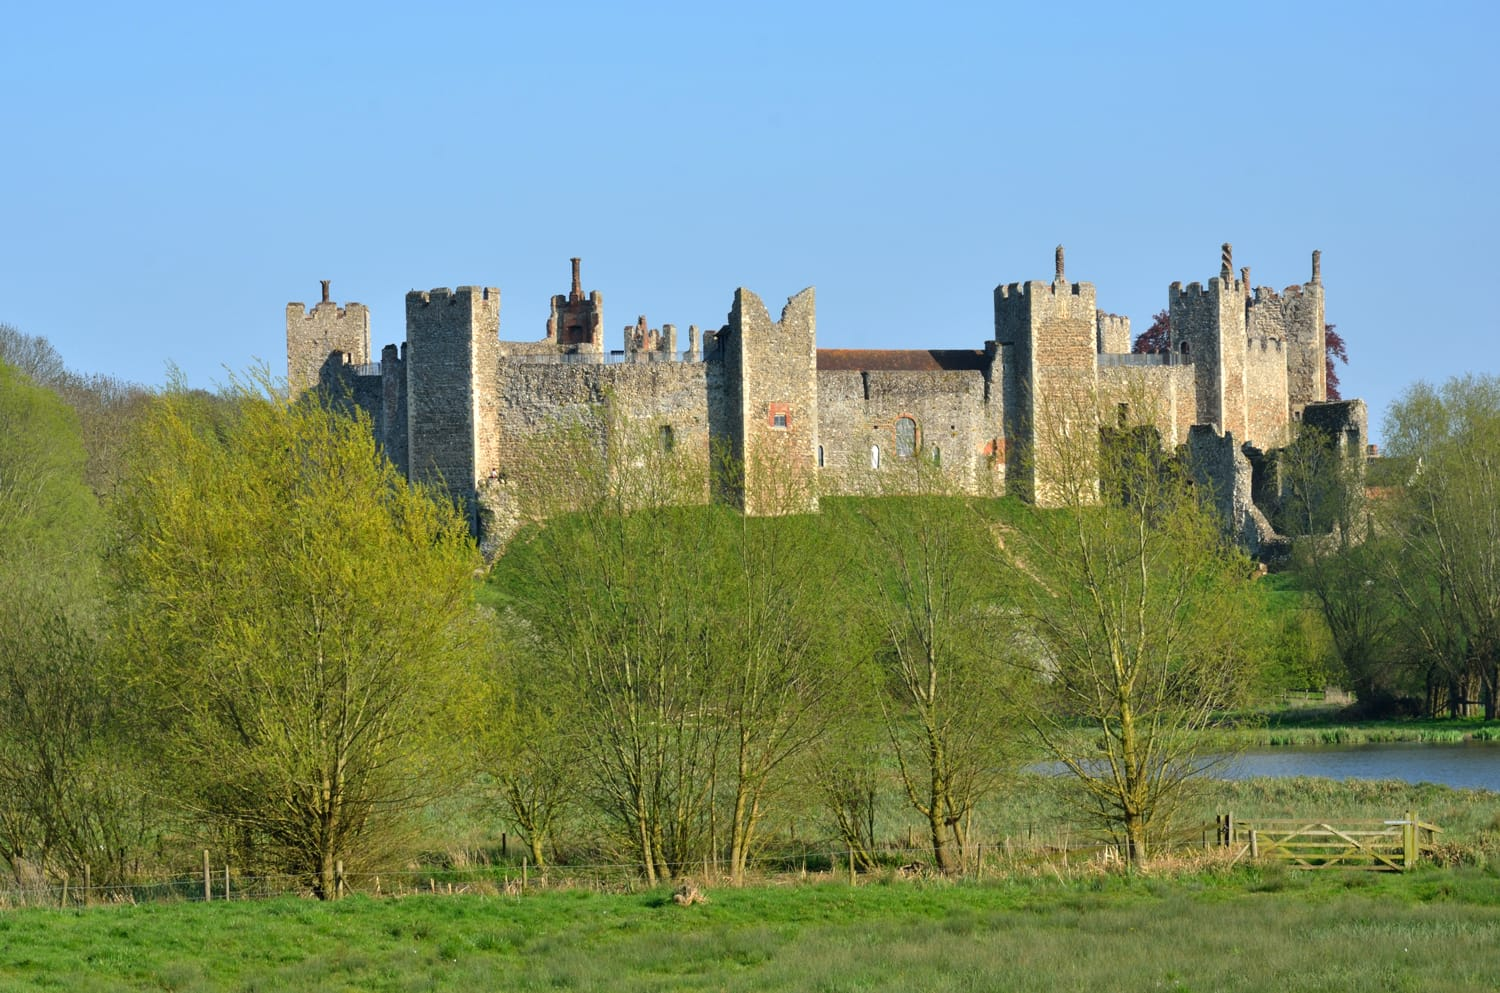 Framlingham castle in England, UK